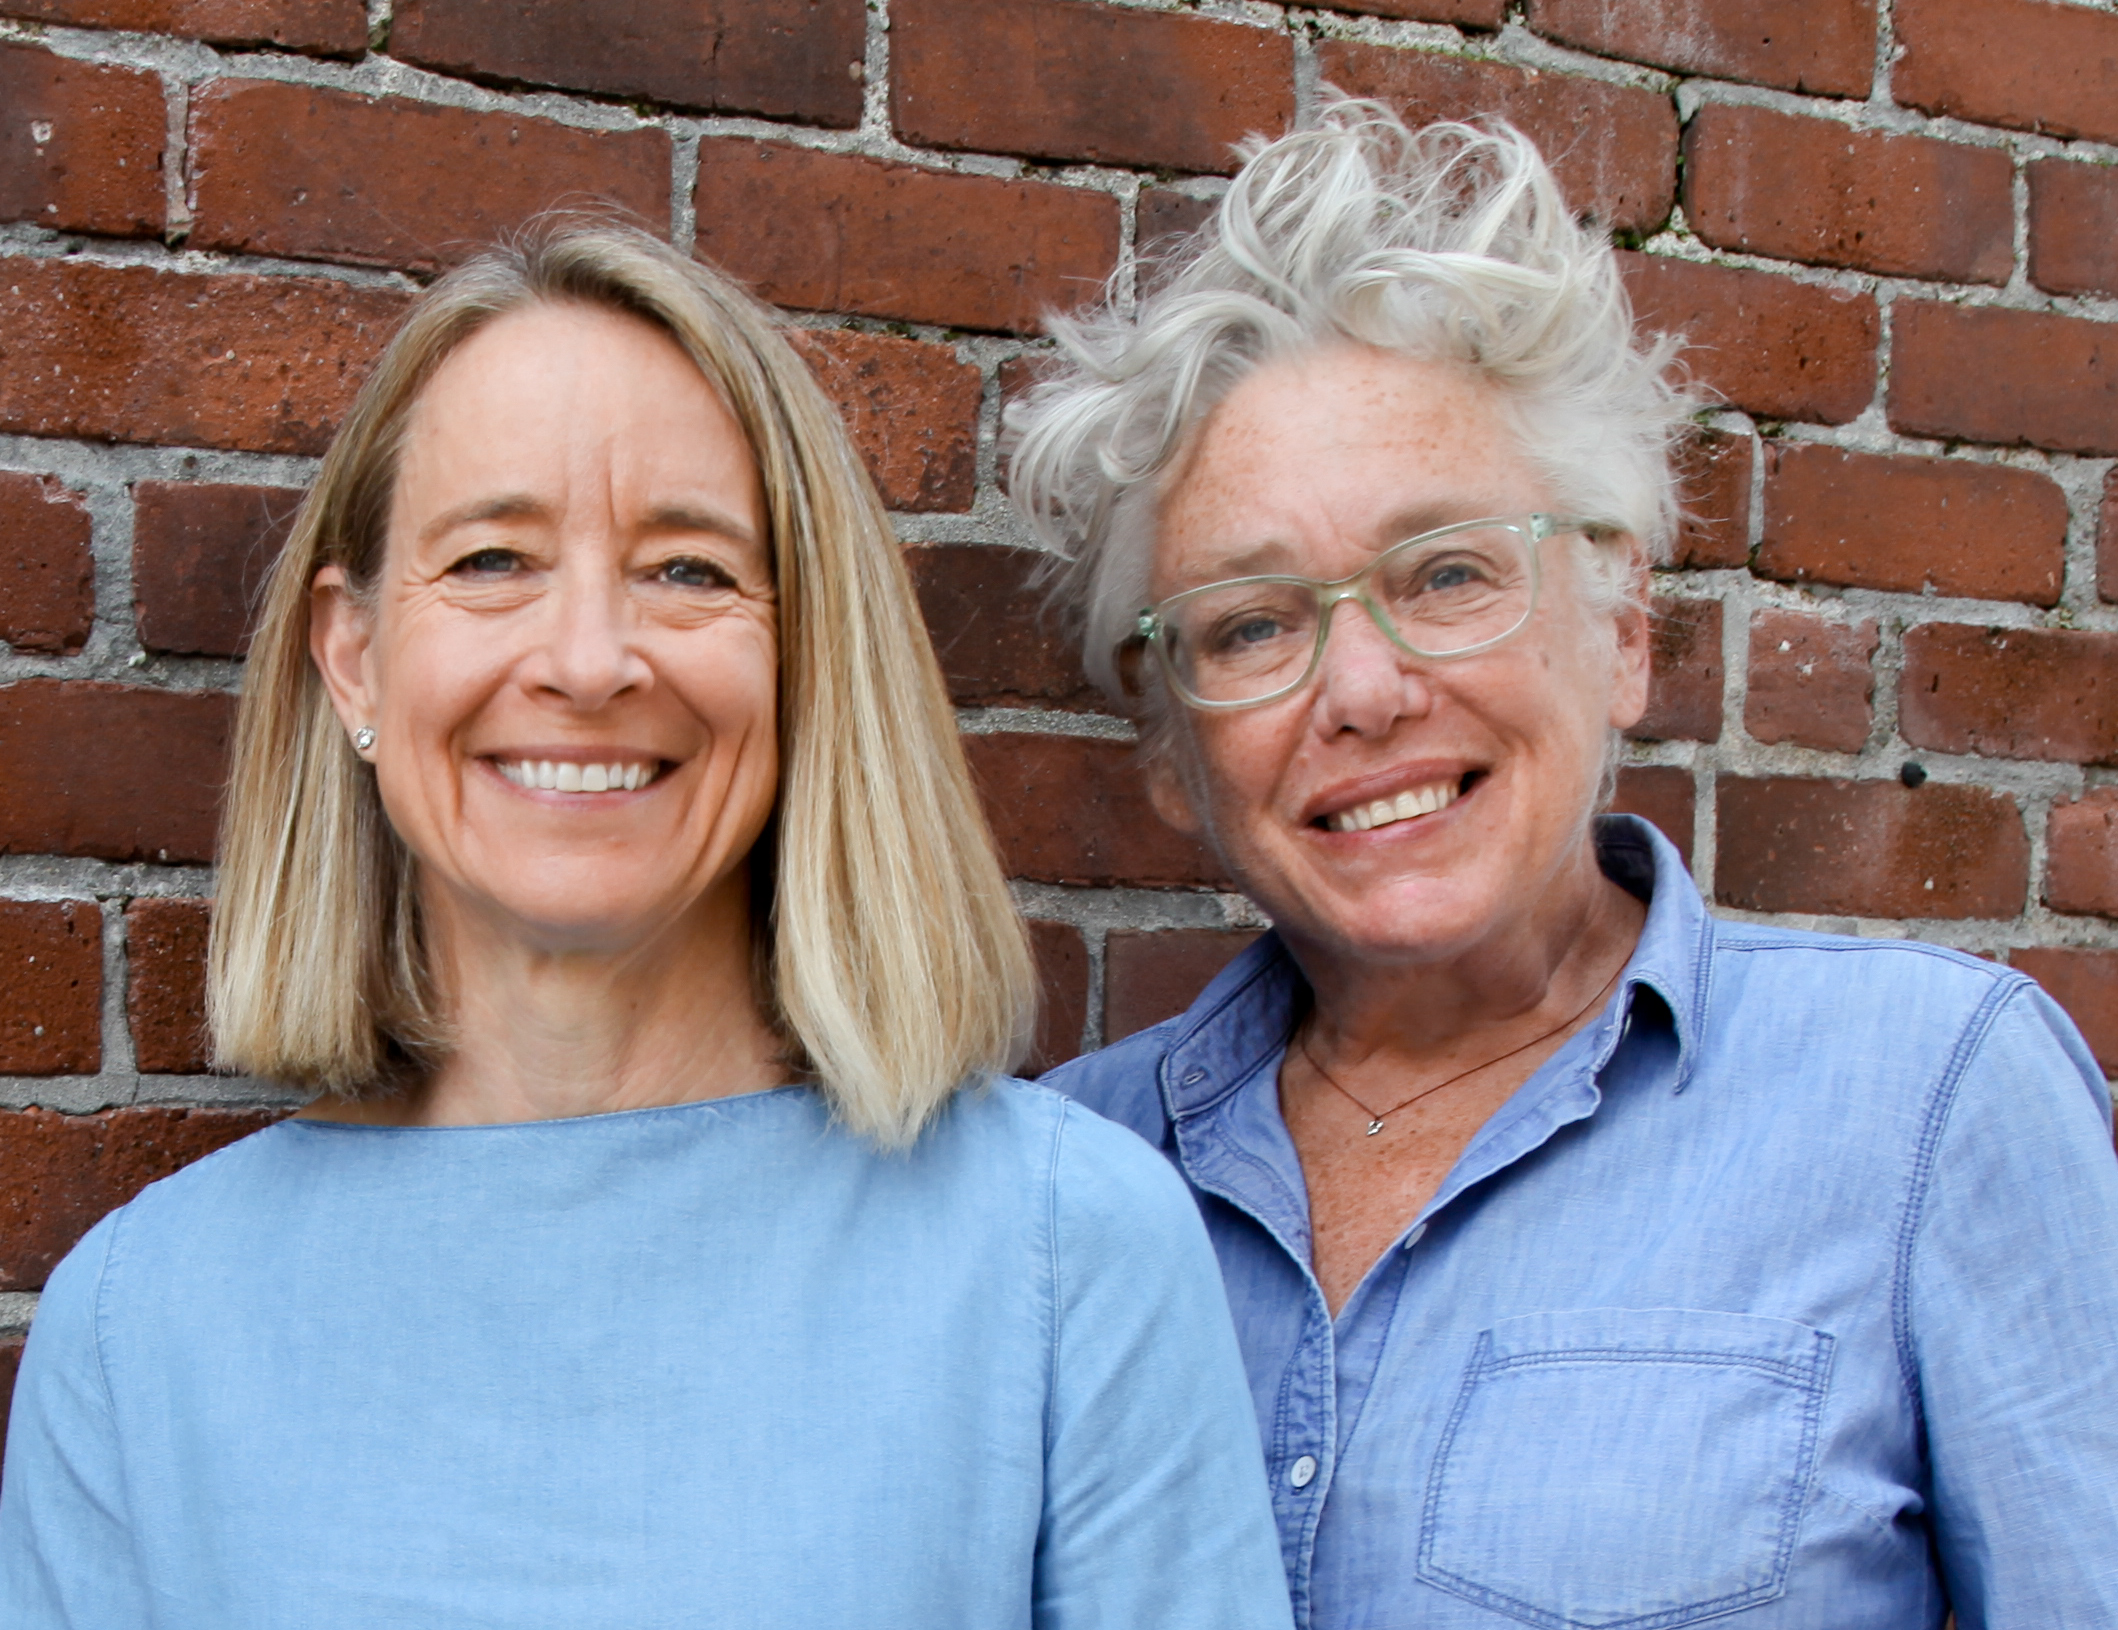 """Emily Luchetti and Erin McHugh: """"We Are Big Believers in Doing at Least One Fun Thing a Day, However Small."""""""